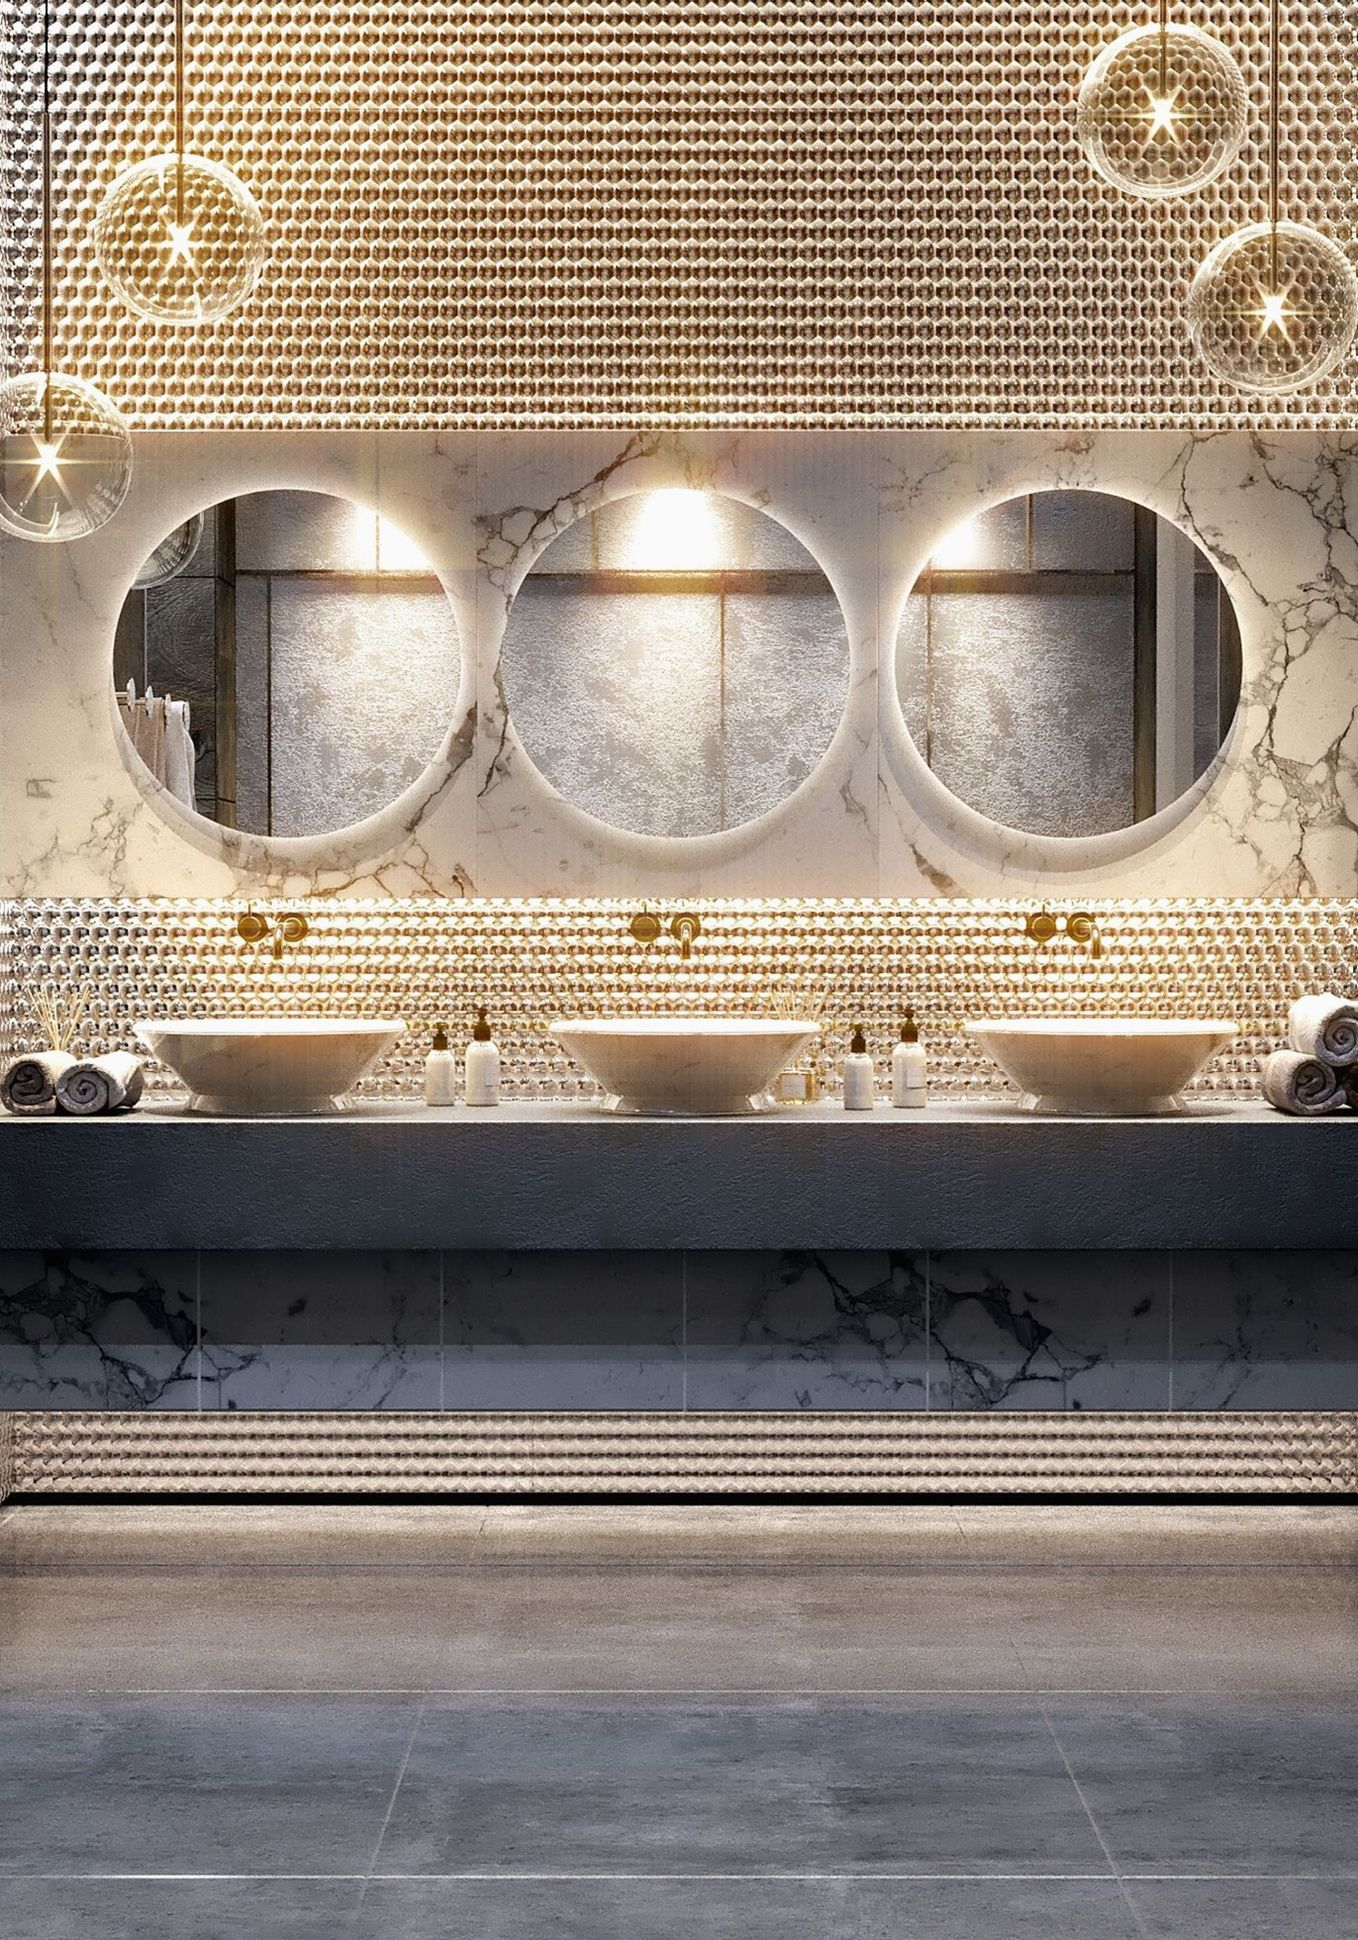 remodeling bathroom near me (With images) | Restaurant ...